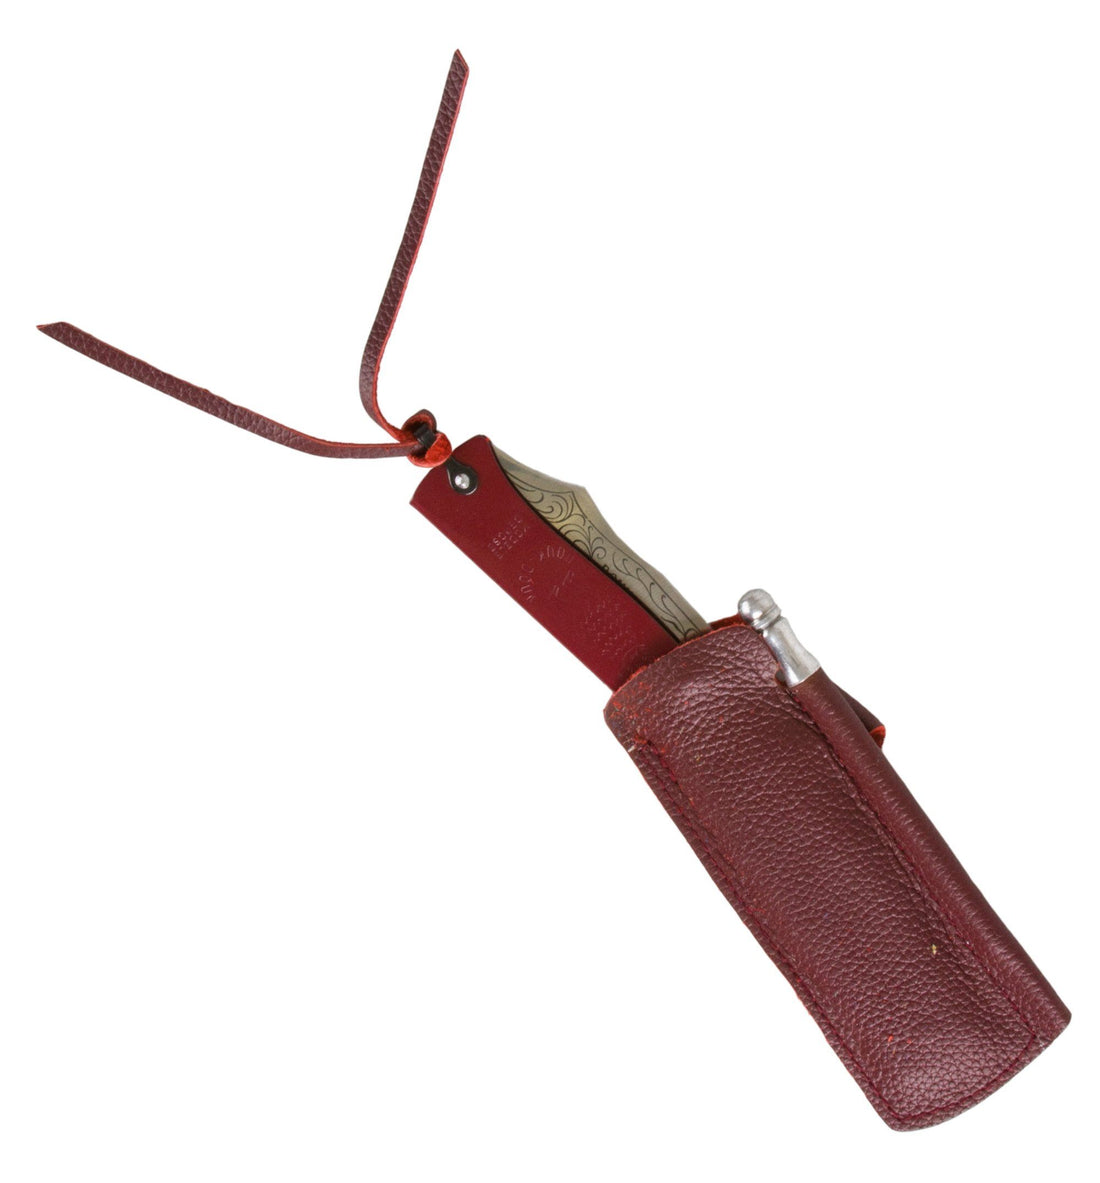 Douk-Douk Knife w/ leather case Red - Outdoor Living/Travel - Iron and Resin